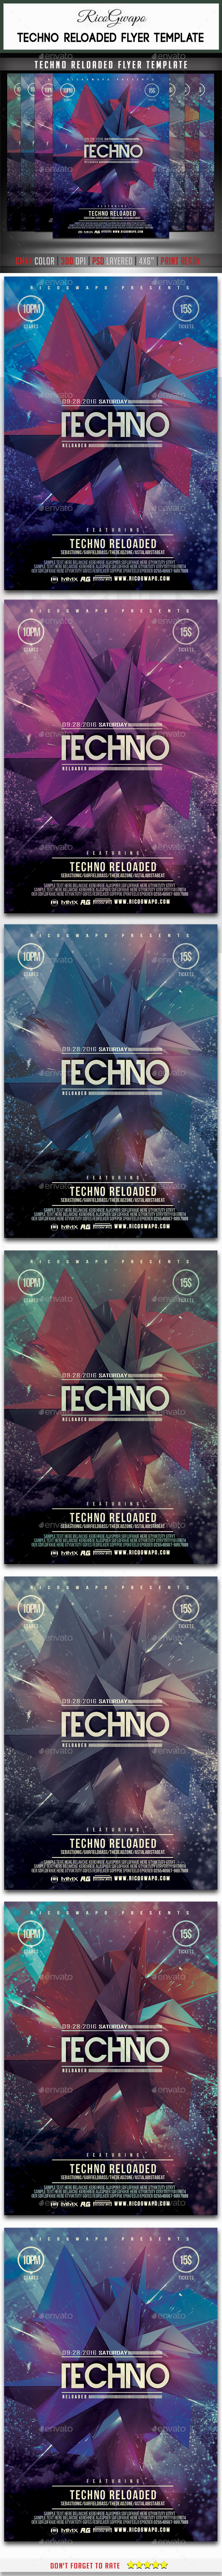 Electro Reloaded Flyer Template - Flyers Print Templates